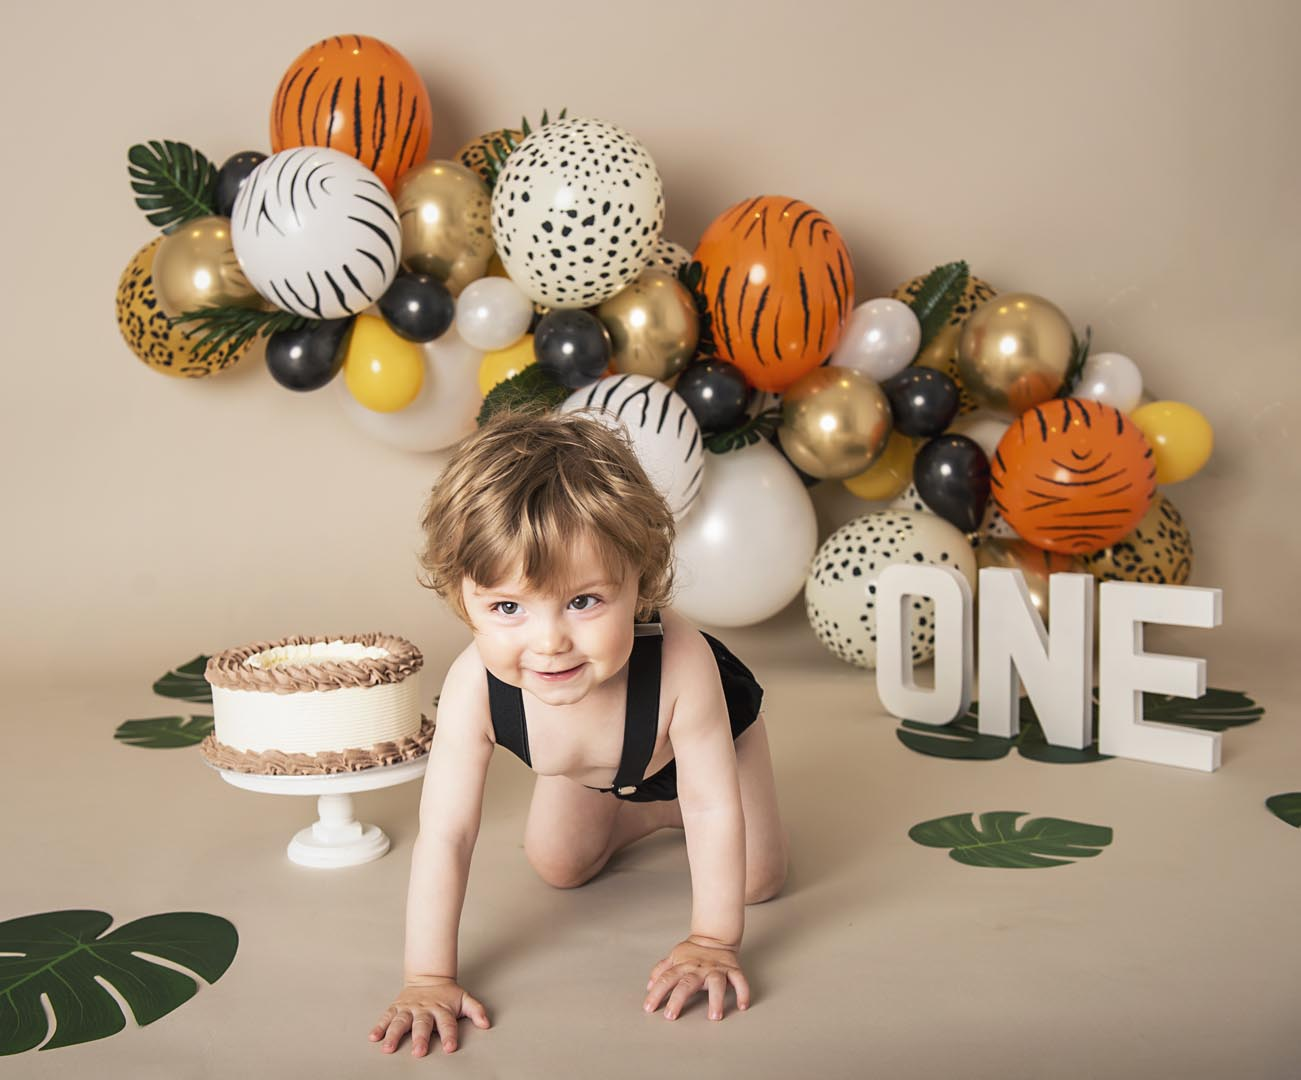 photo shoot | Jenna Noble Photography in Bromley, Bickley, Orpington, Petts Wood and surrounding areas in Kent